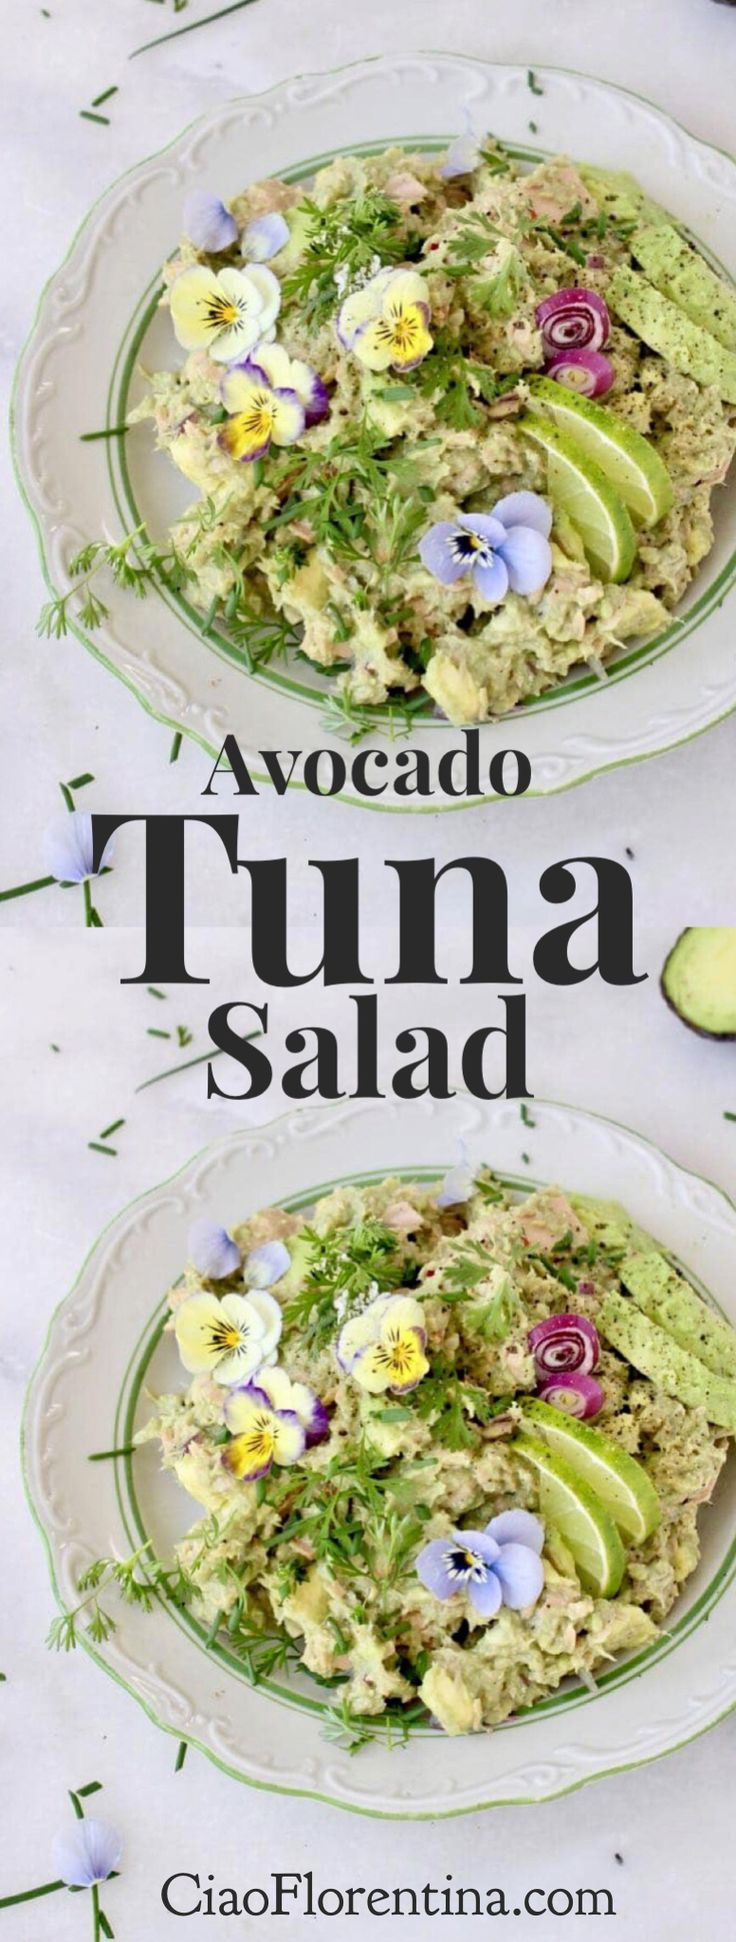 How to make the best avocado tuna salad, without mayo, just wild caught yellow fin tuna, creamy ripe avocados, zesty lime and your favorite herbs   CiaoFlorentina.com @CiaoFlorentina